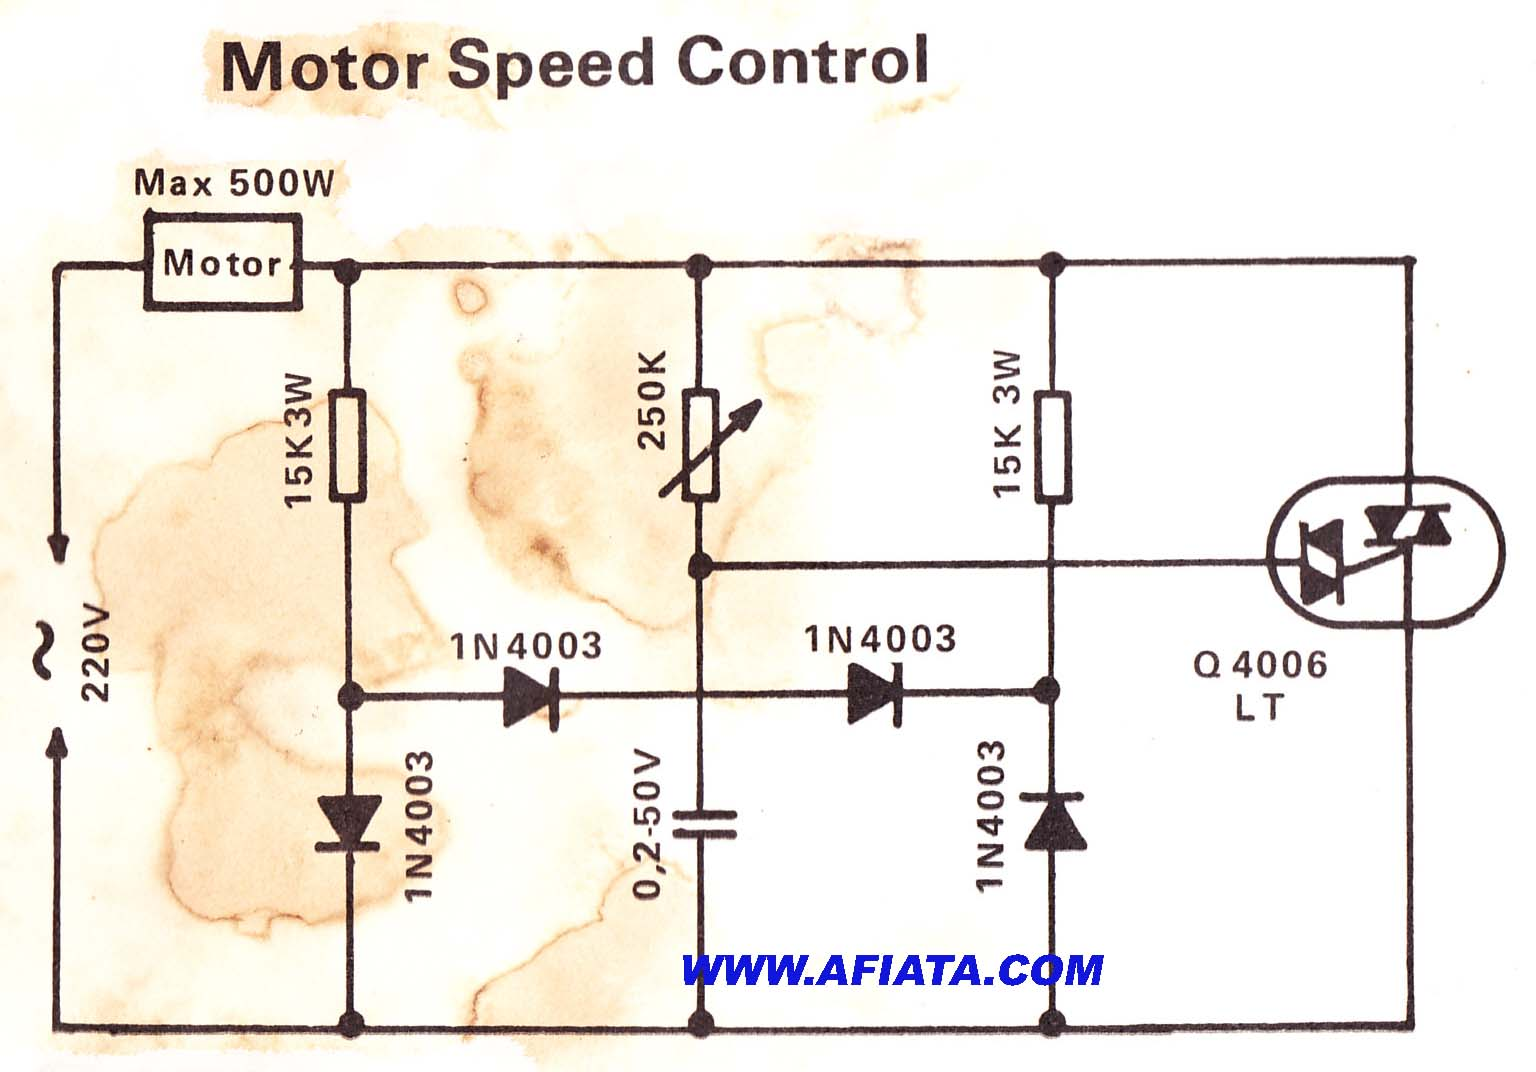 General electric motor wiring diagram general get free 3 phase motor speed control